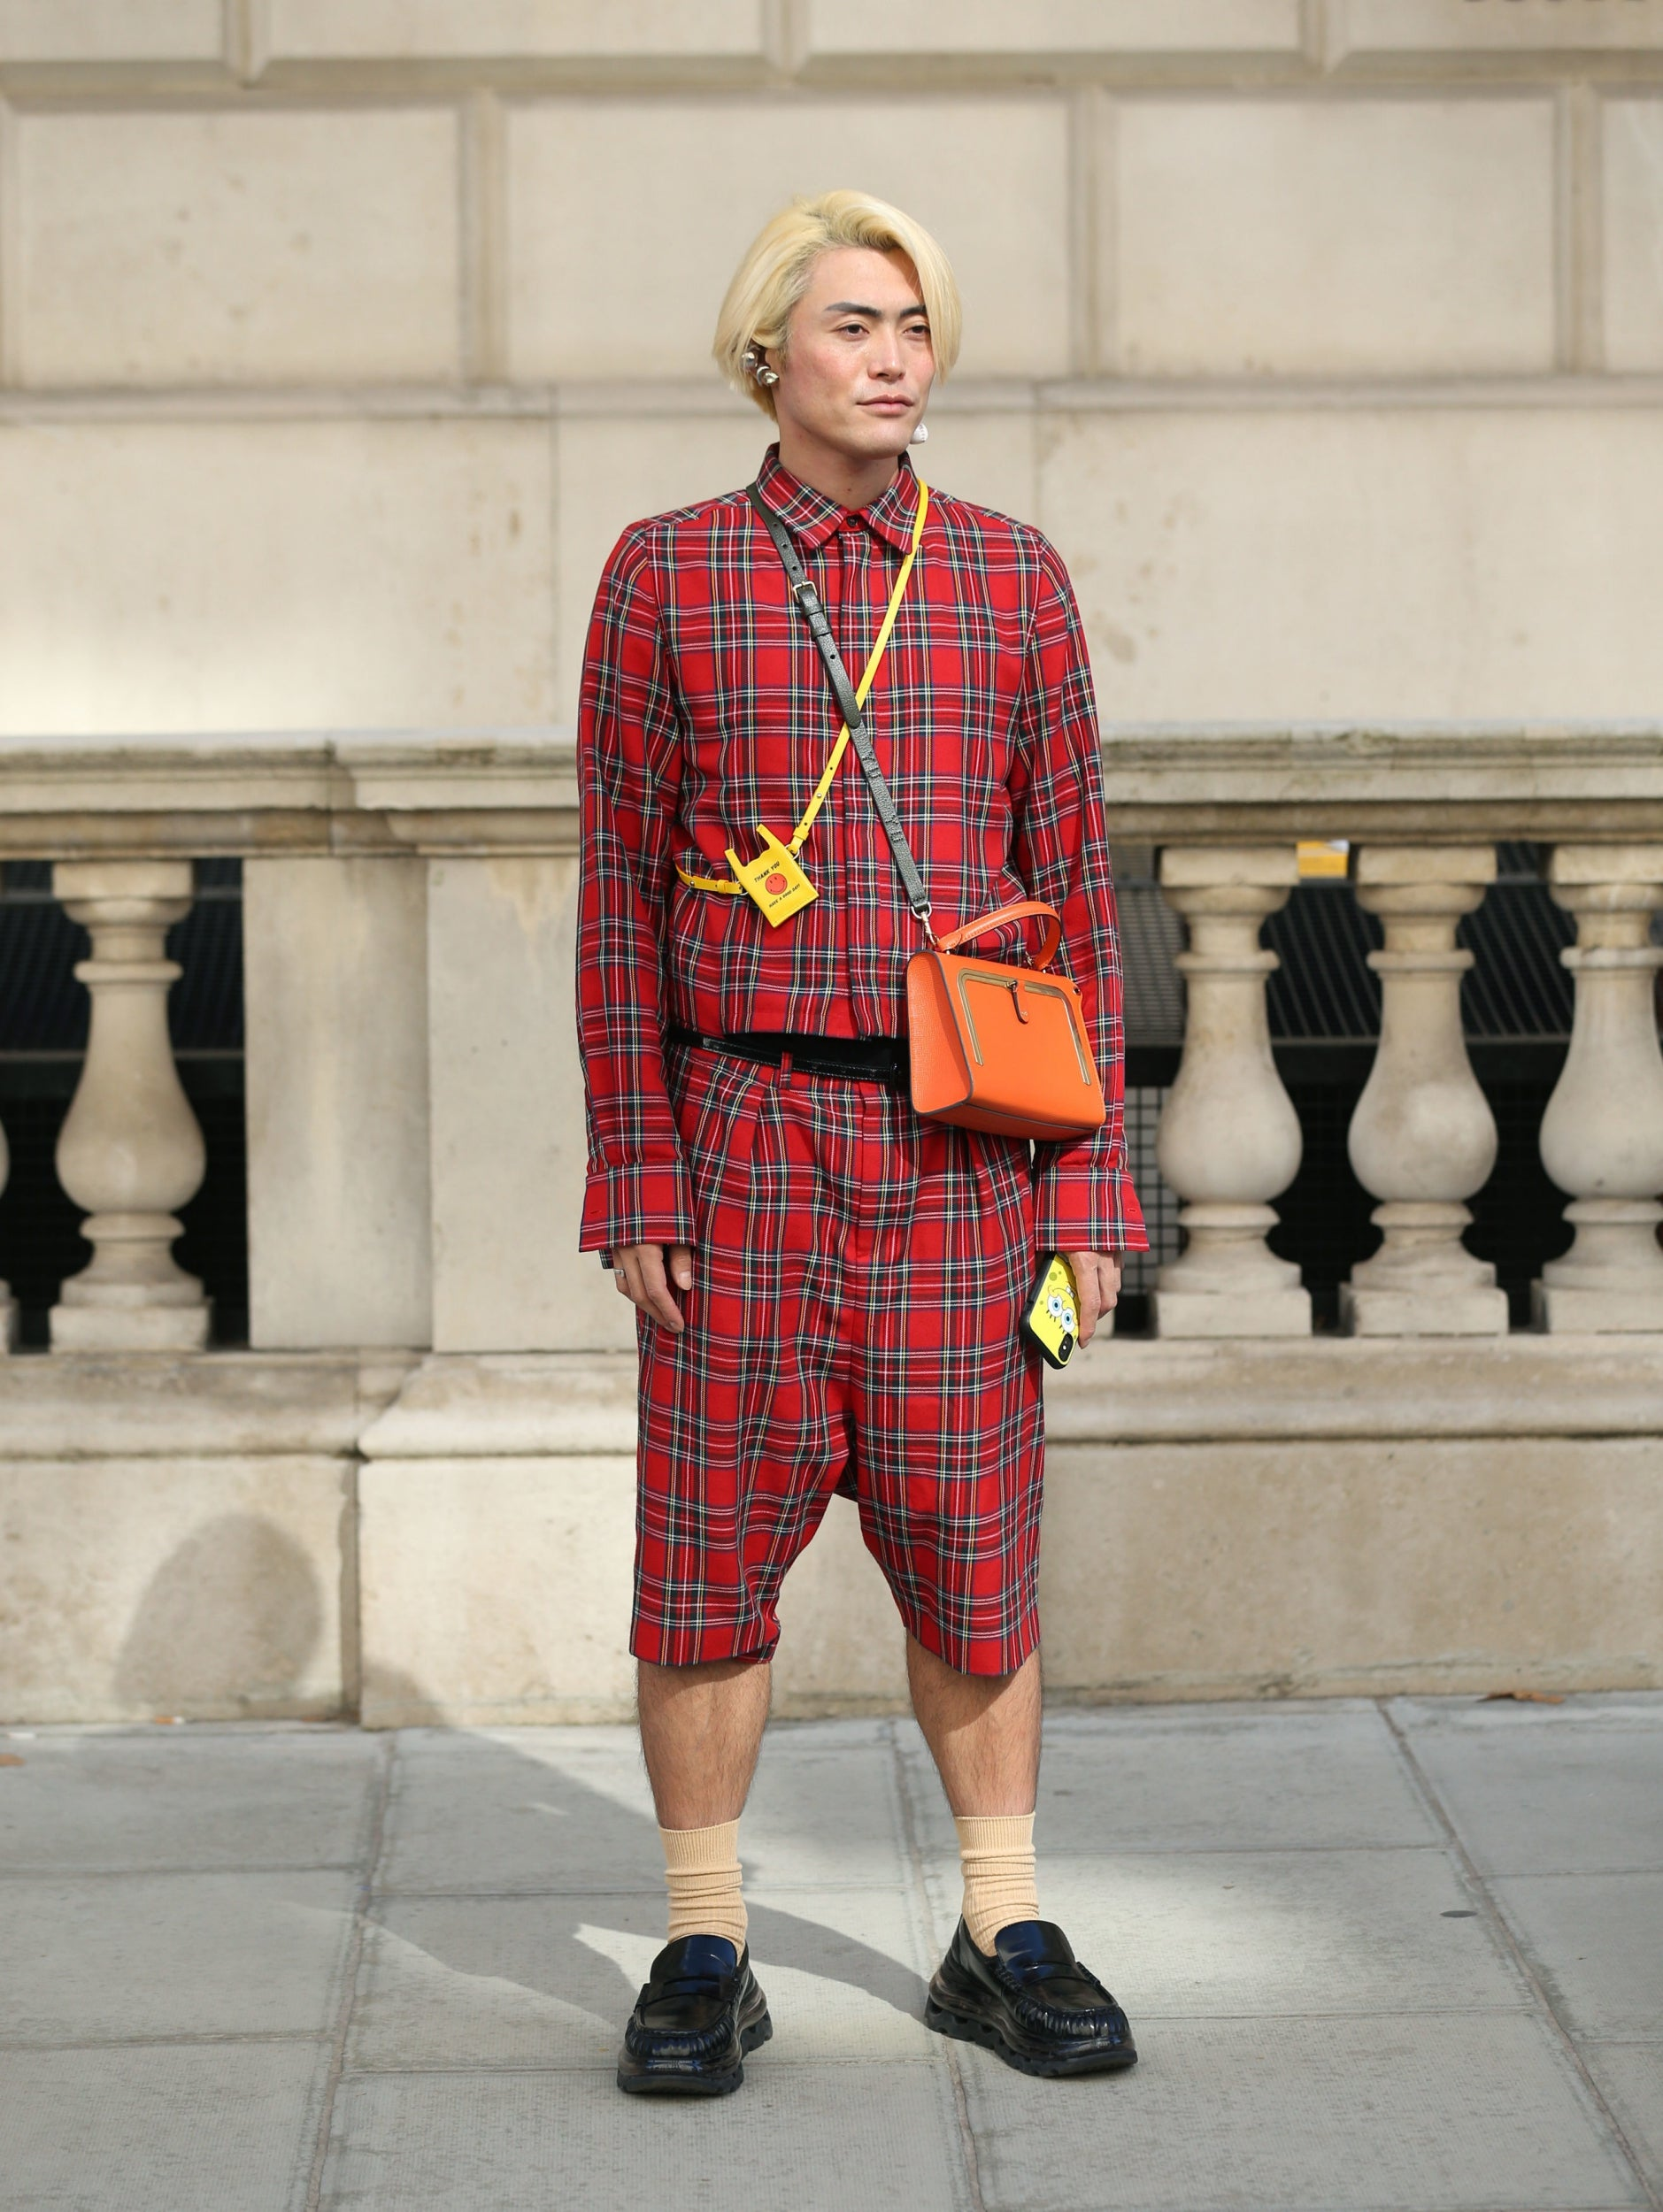 All The Best Looks From London Fashion Week SS18 | Street